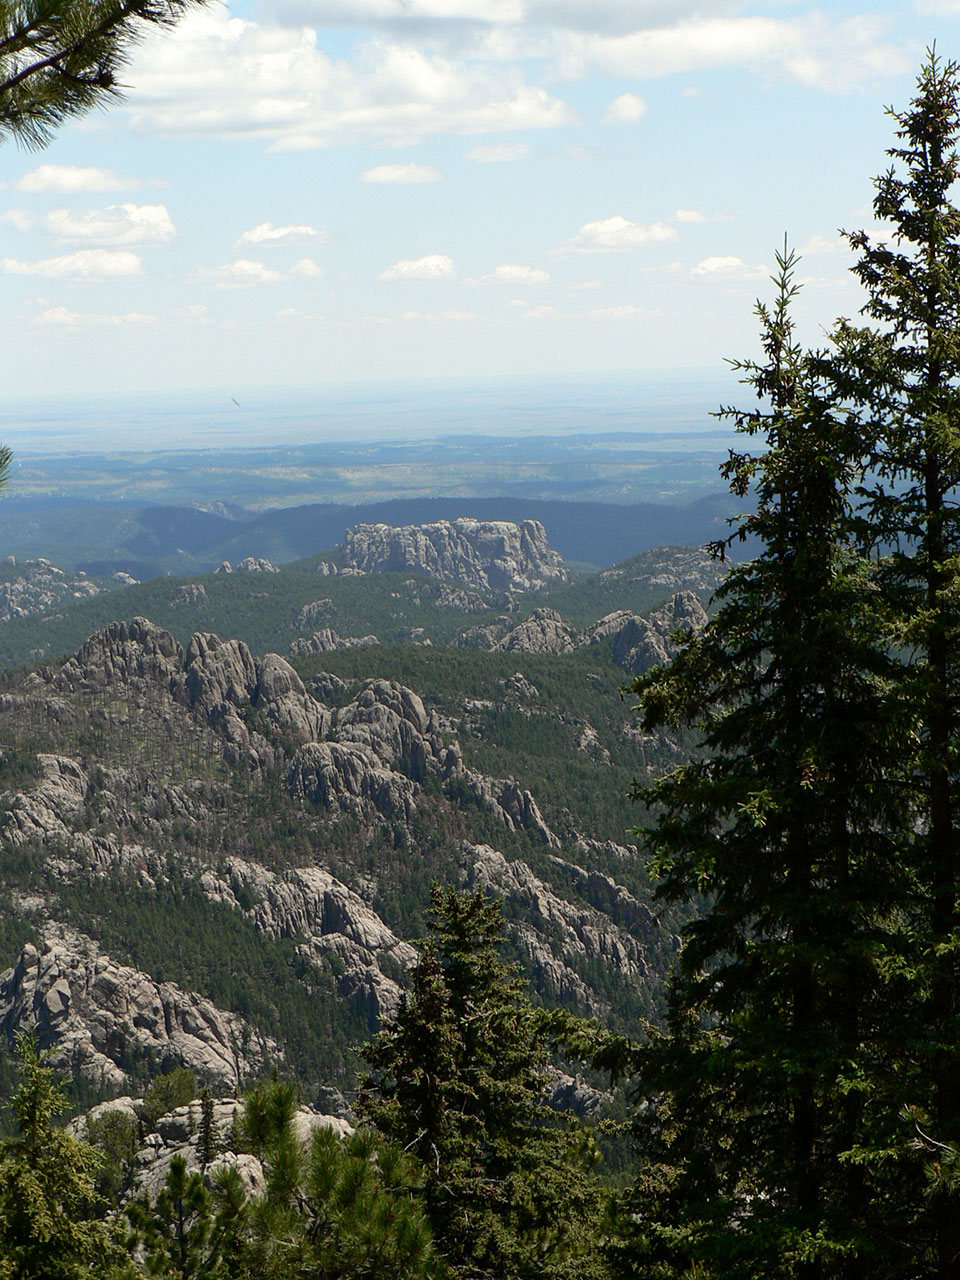 View of Mount Rushmore from behind with the plains in the distance.